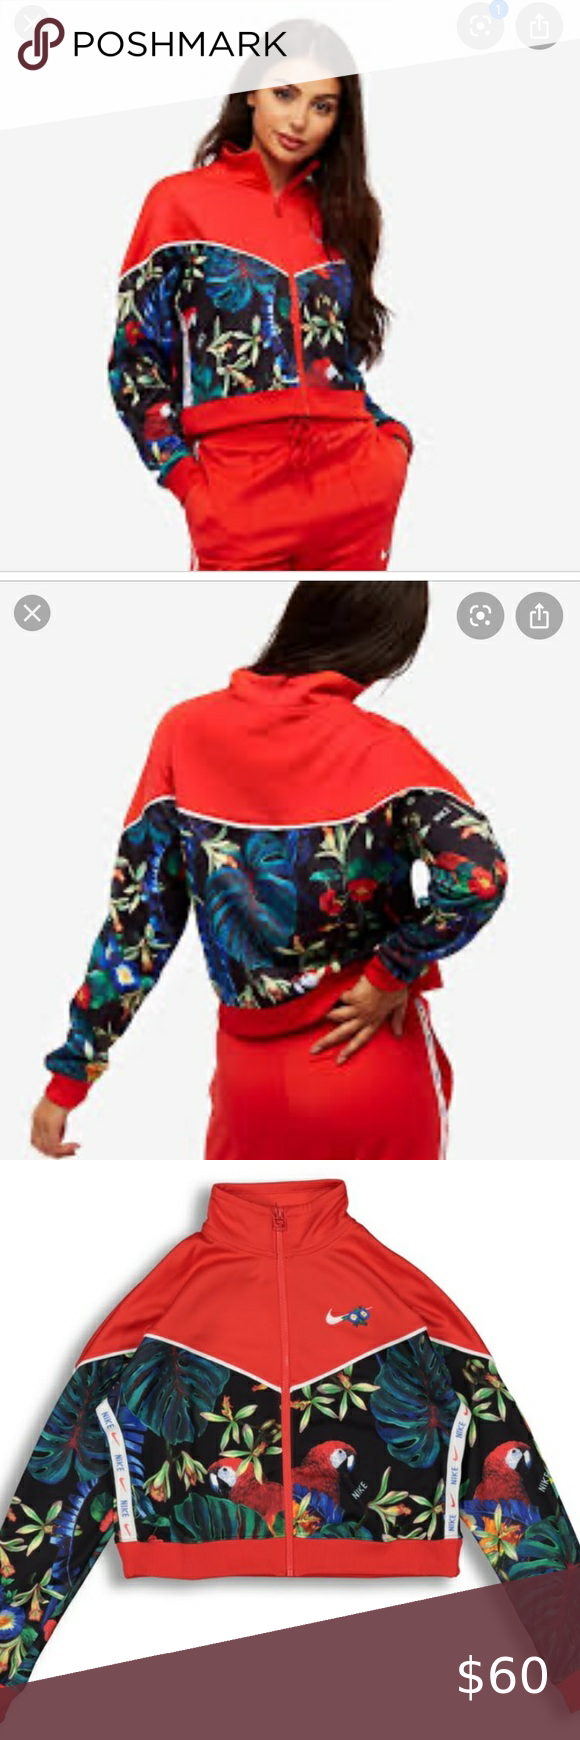 Nike Tropical Print Red Jacket Clothes Design Fashion Red Jacket [ 1740 x 580 Pixel ]